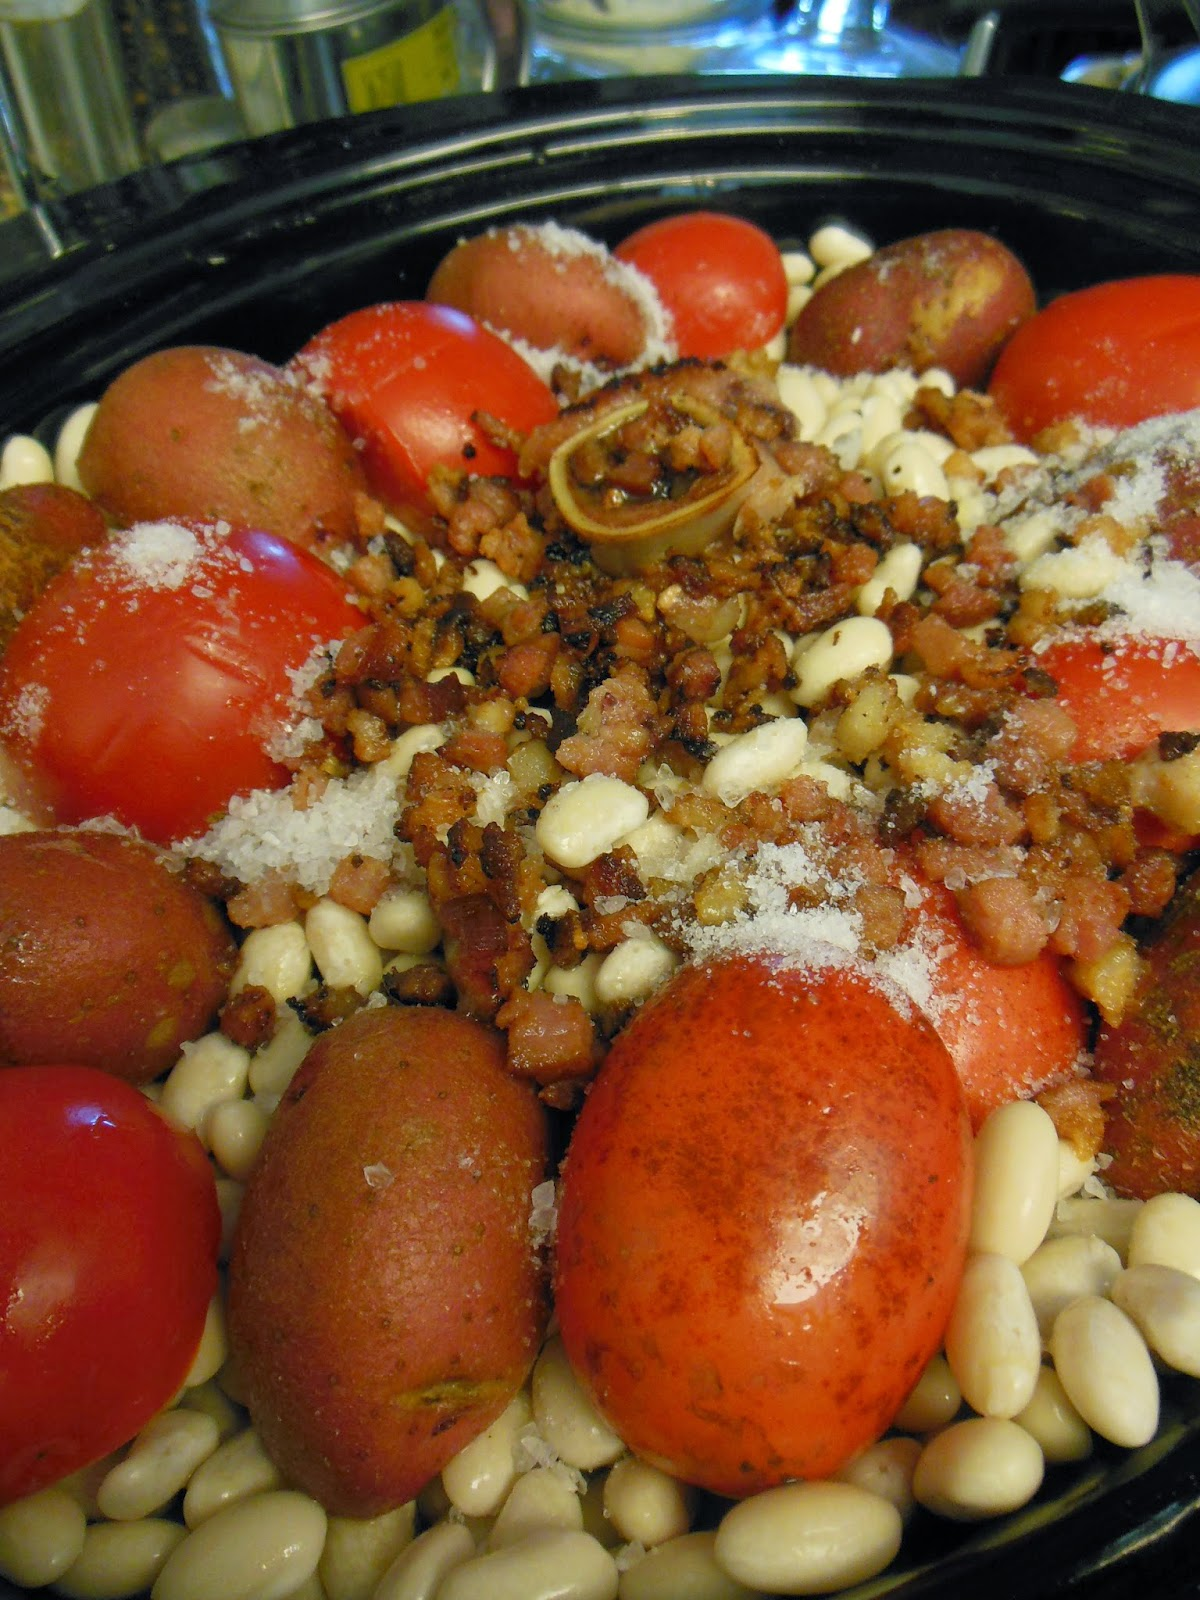 Every part of this dish comes together to create a delicious pot of beans.